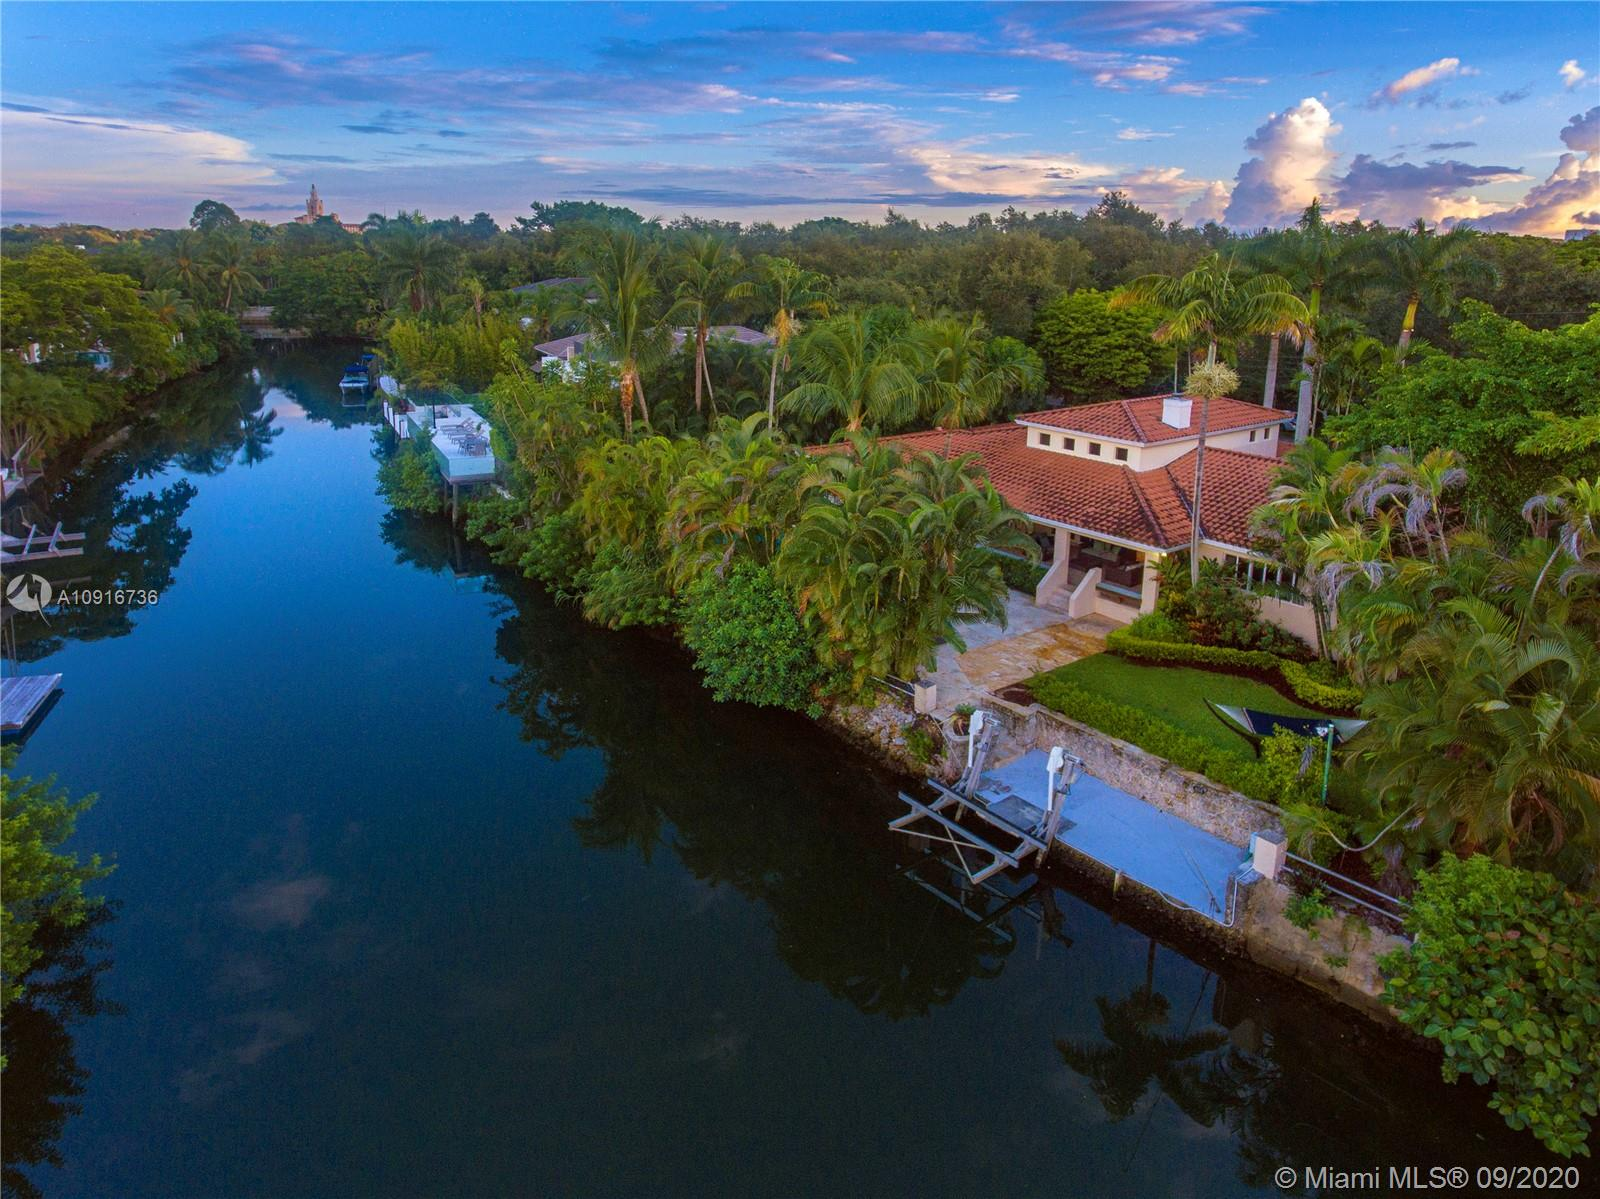 Live the good life on the Coral Gables Waterway. Stunning 4-bedroom, 3.5-bath home, on the best Hurricane safe harbor in South Florida. Solid Coral dock with boat life, 25 minutes from the bay at idle. Beautiful Hardwood kitchen with Onix center island, great room with fireplace and cathedral ceiling with exposed wood beams. Large master suite with bathtub and access to the covered patio and pool. Huge lot, almost 14,500 sq. ft. with large saltwater, heated pool and outdoor shower. Professionally landscaped tropical garden with royal palms and exotic gingers. This home is west of US-1 and minutes from downtown Coral Gables, South Miami, Coconut Grove and the Riviera Golf Club.